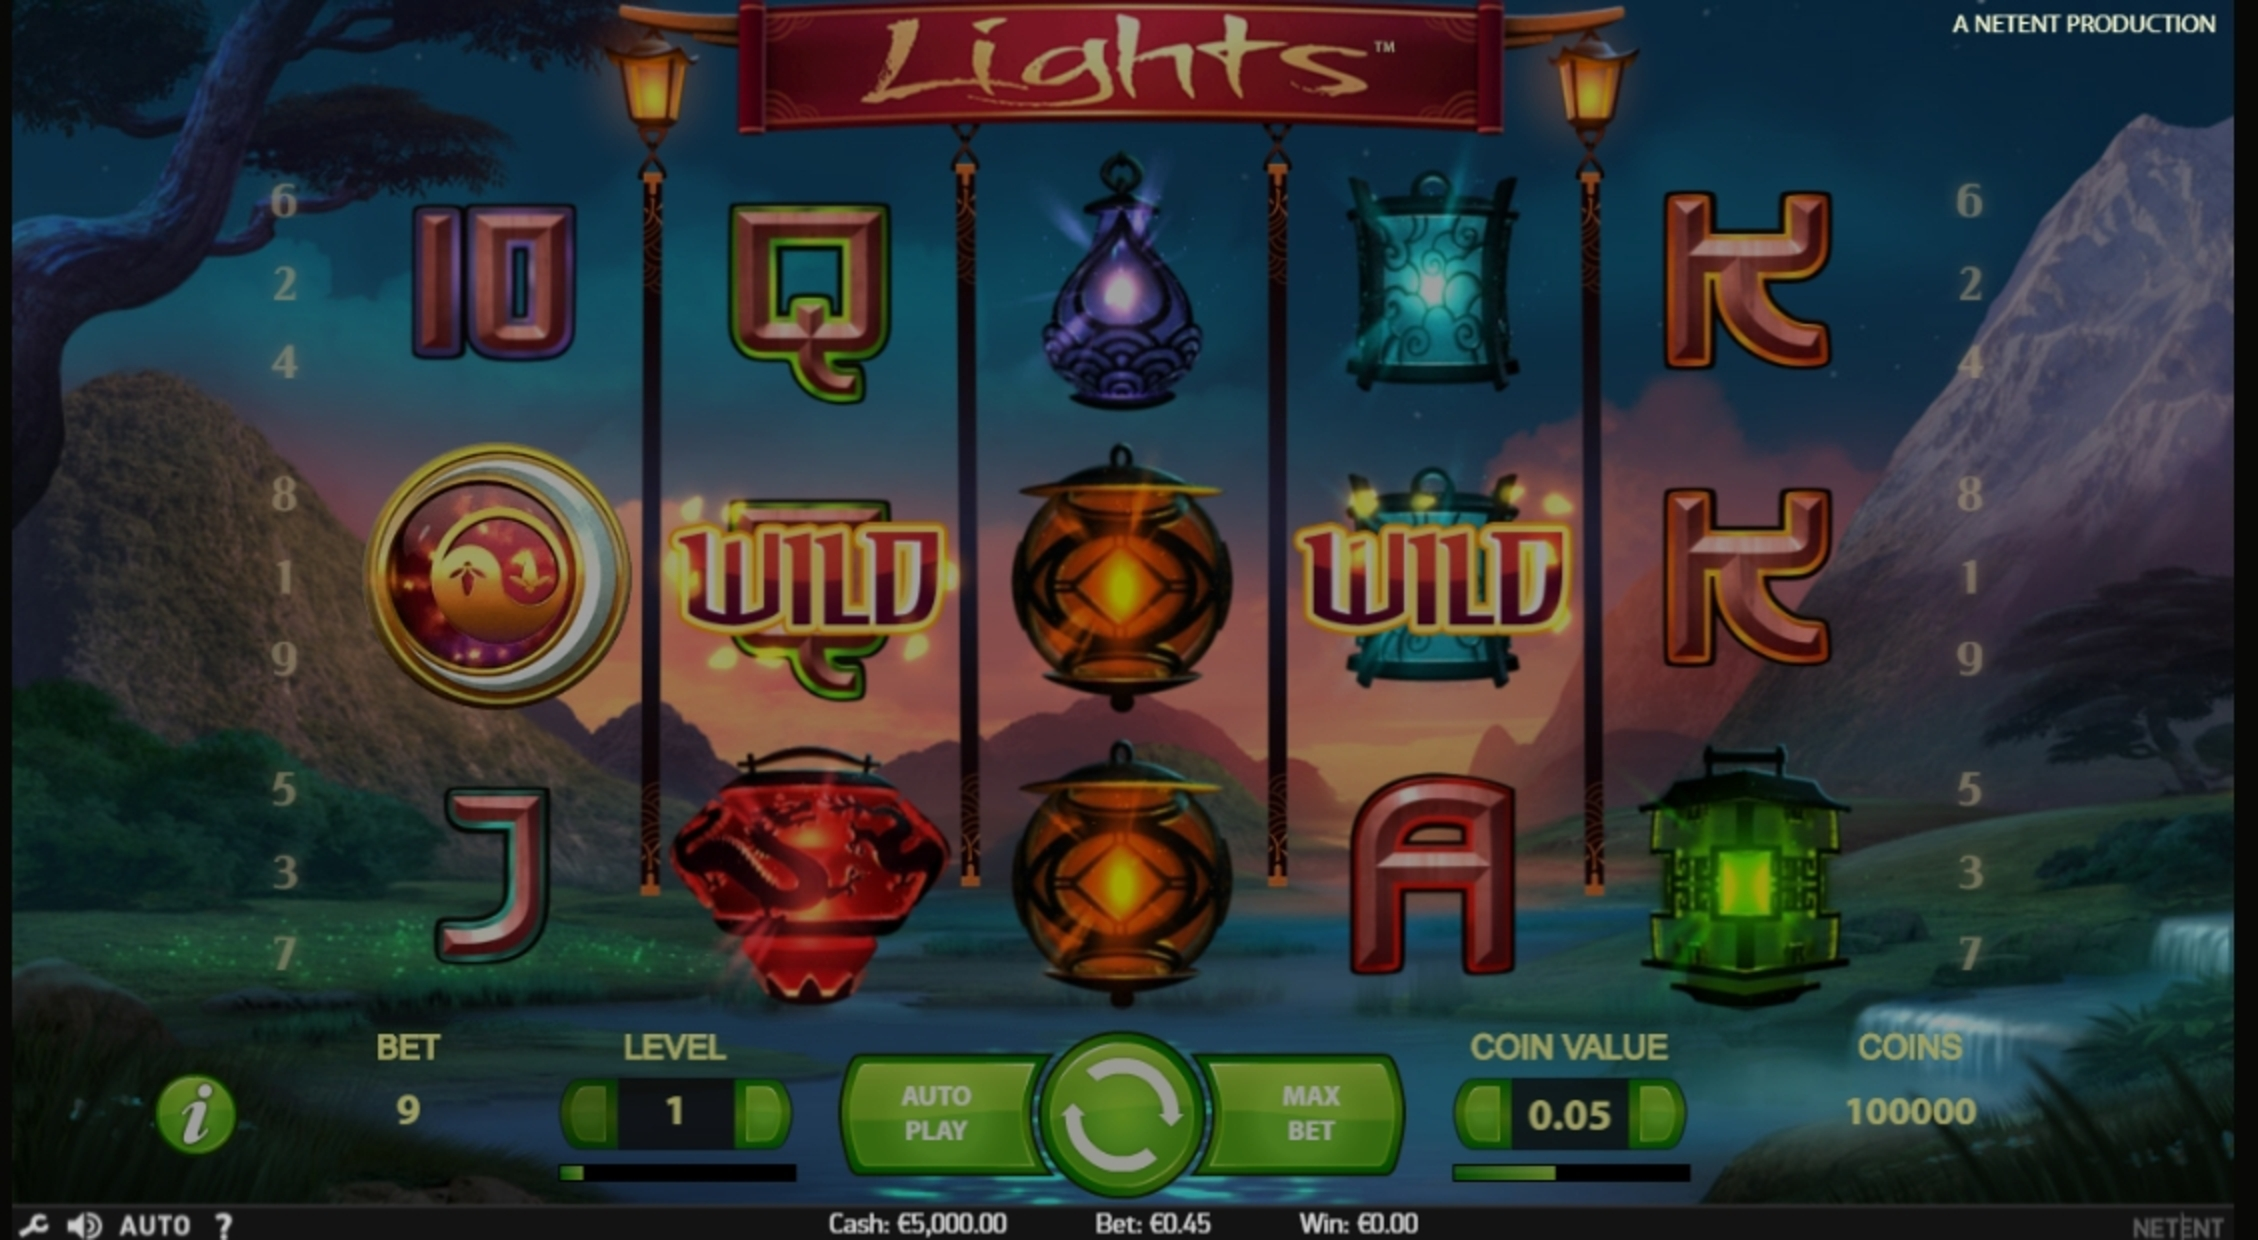 Reels in Lights Slot Game by NetEnt